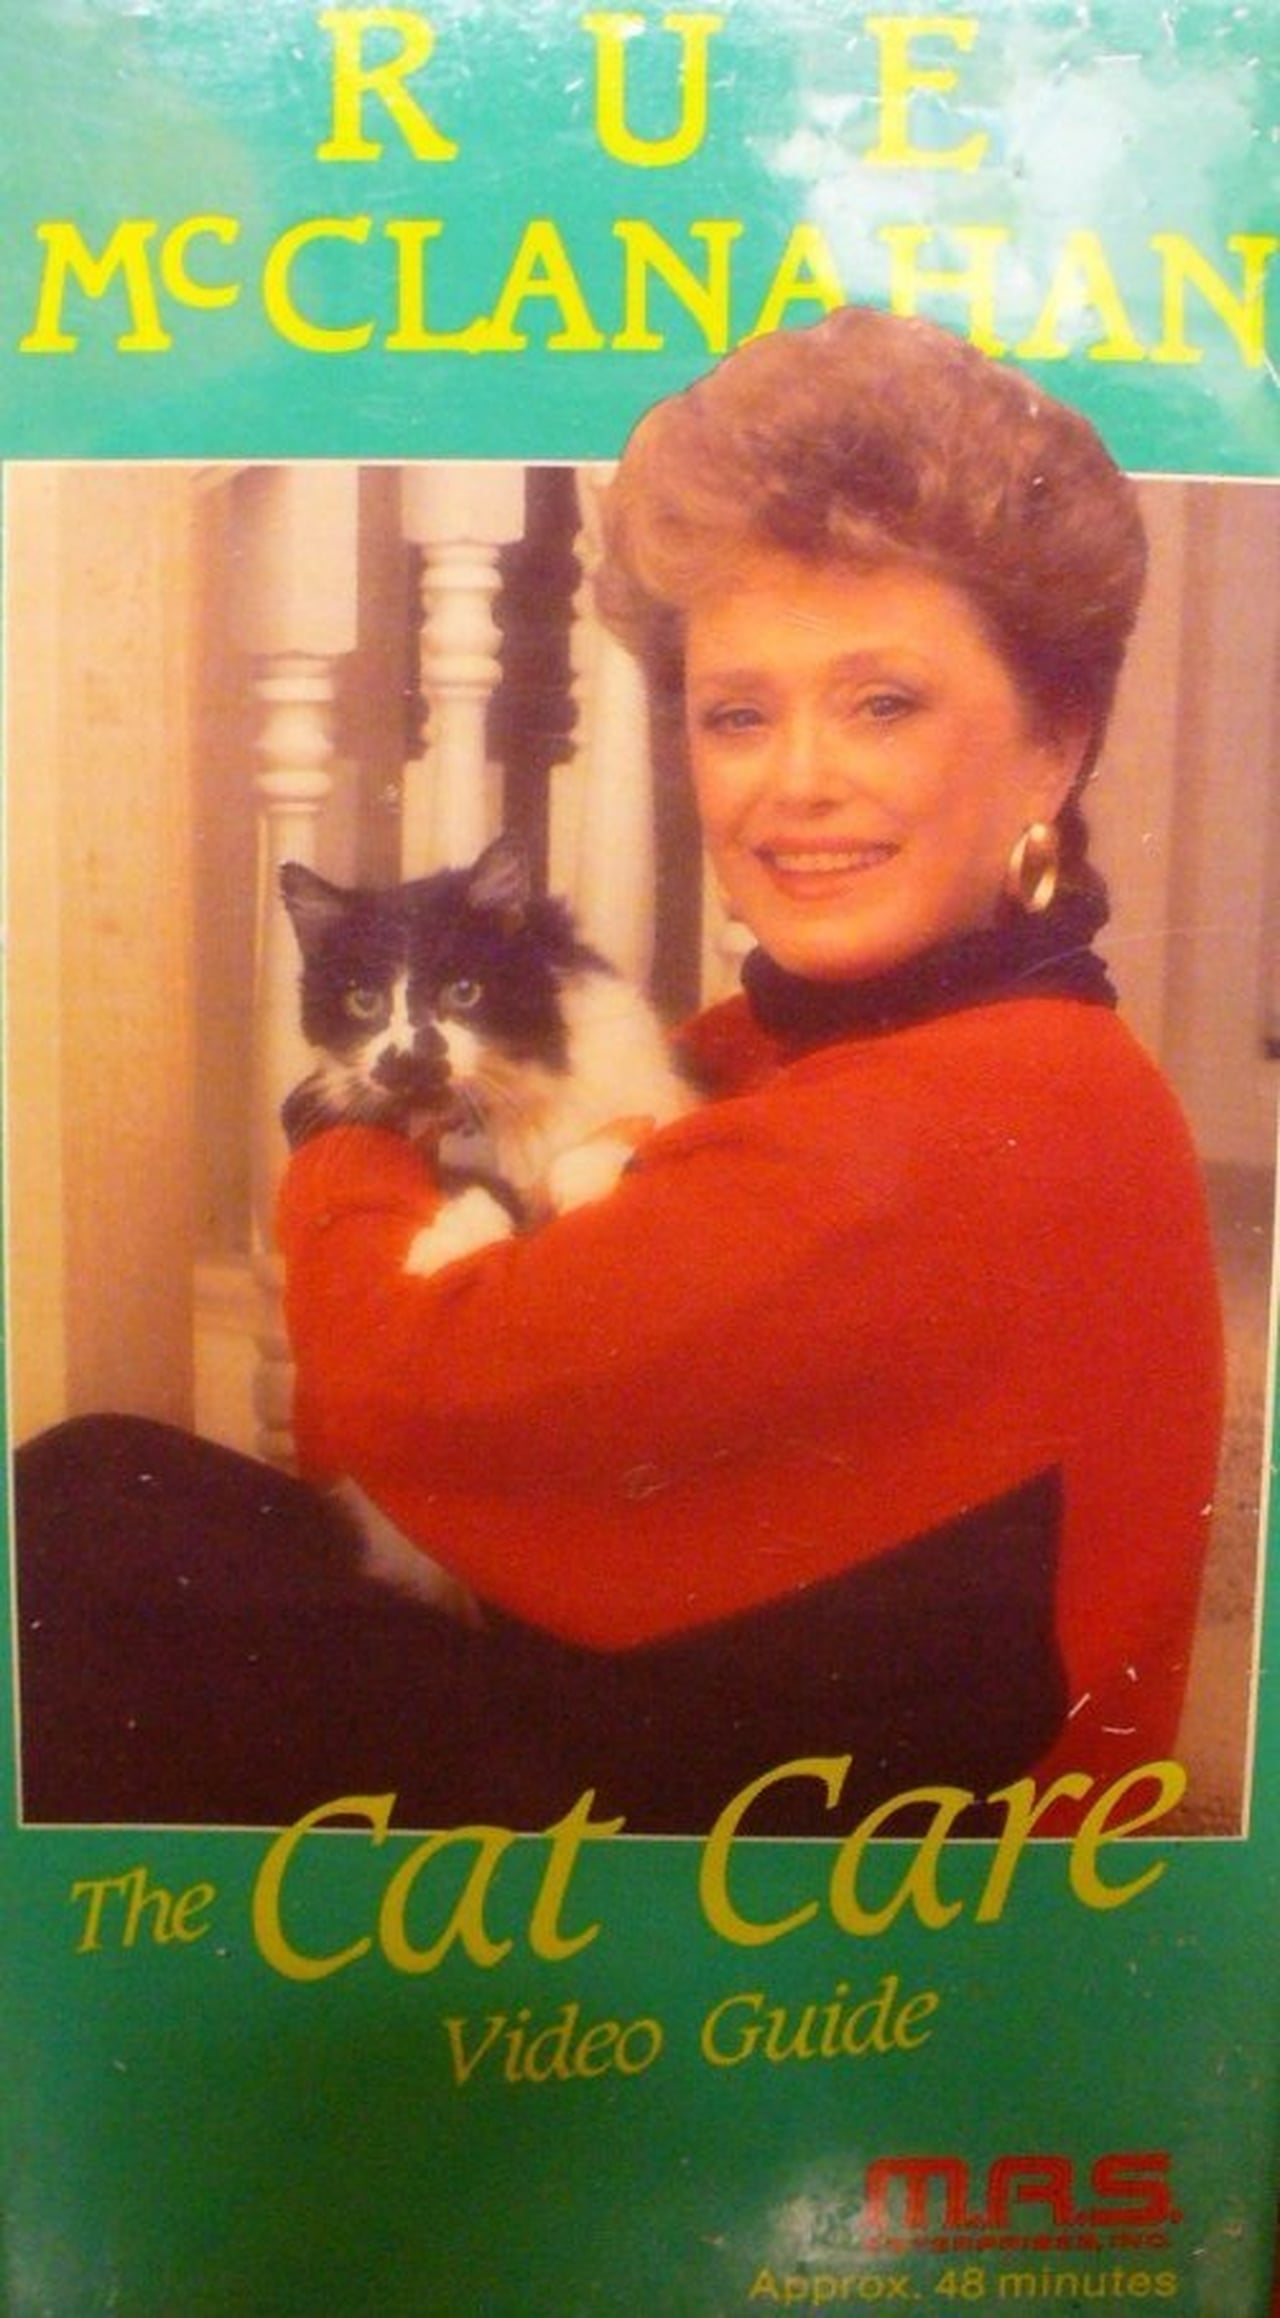 Rue McClanahan: The Cat Care Video Guide